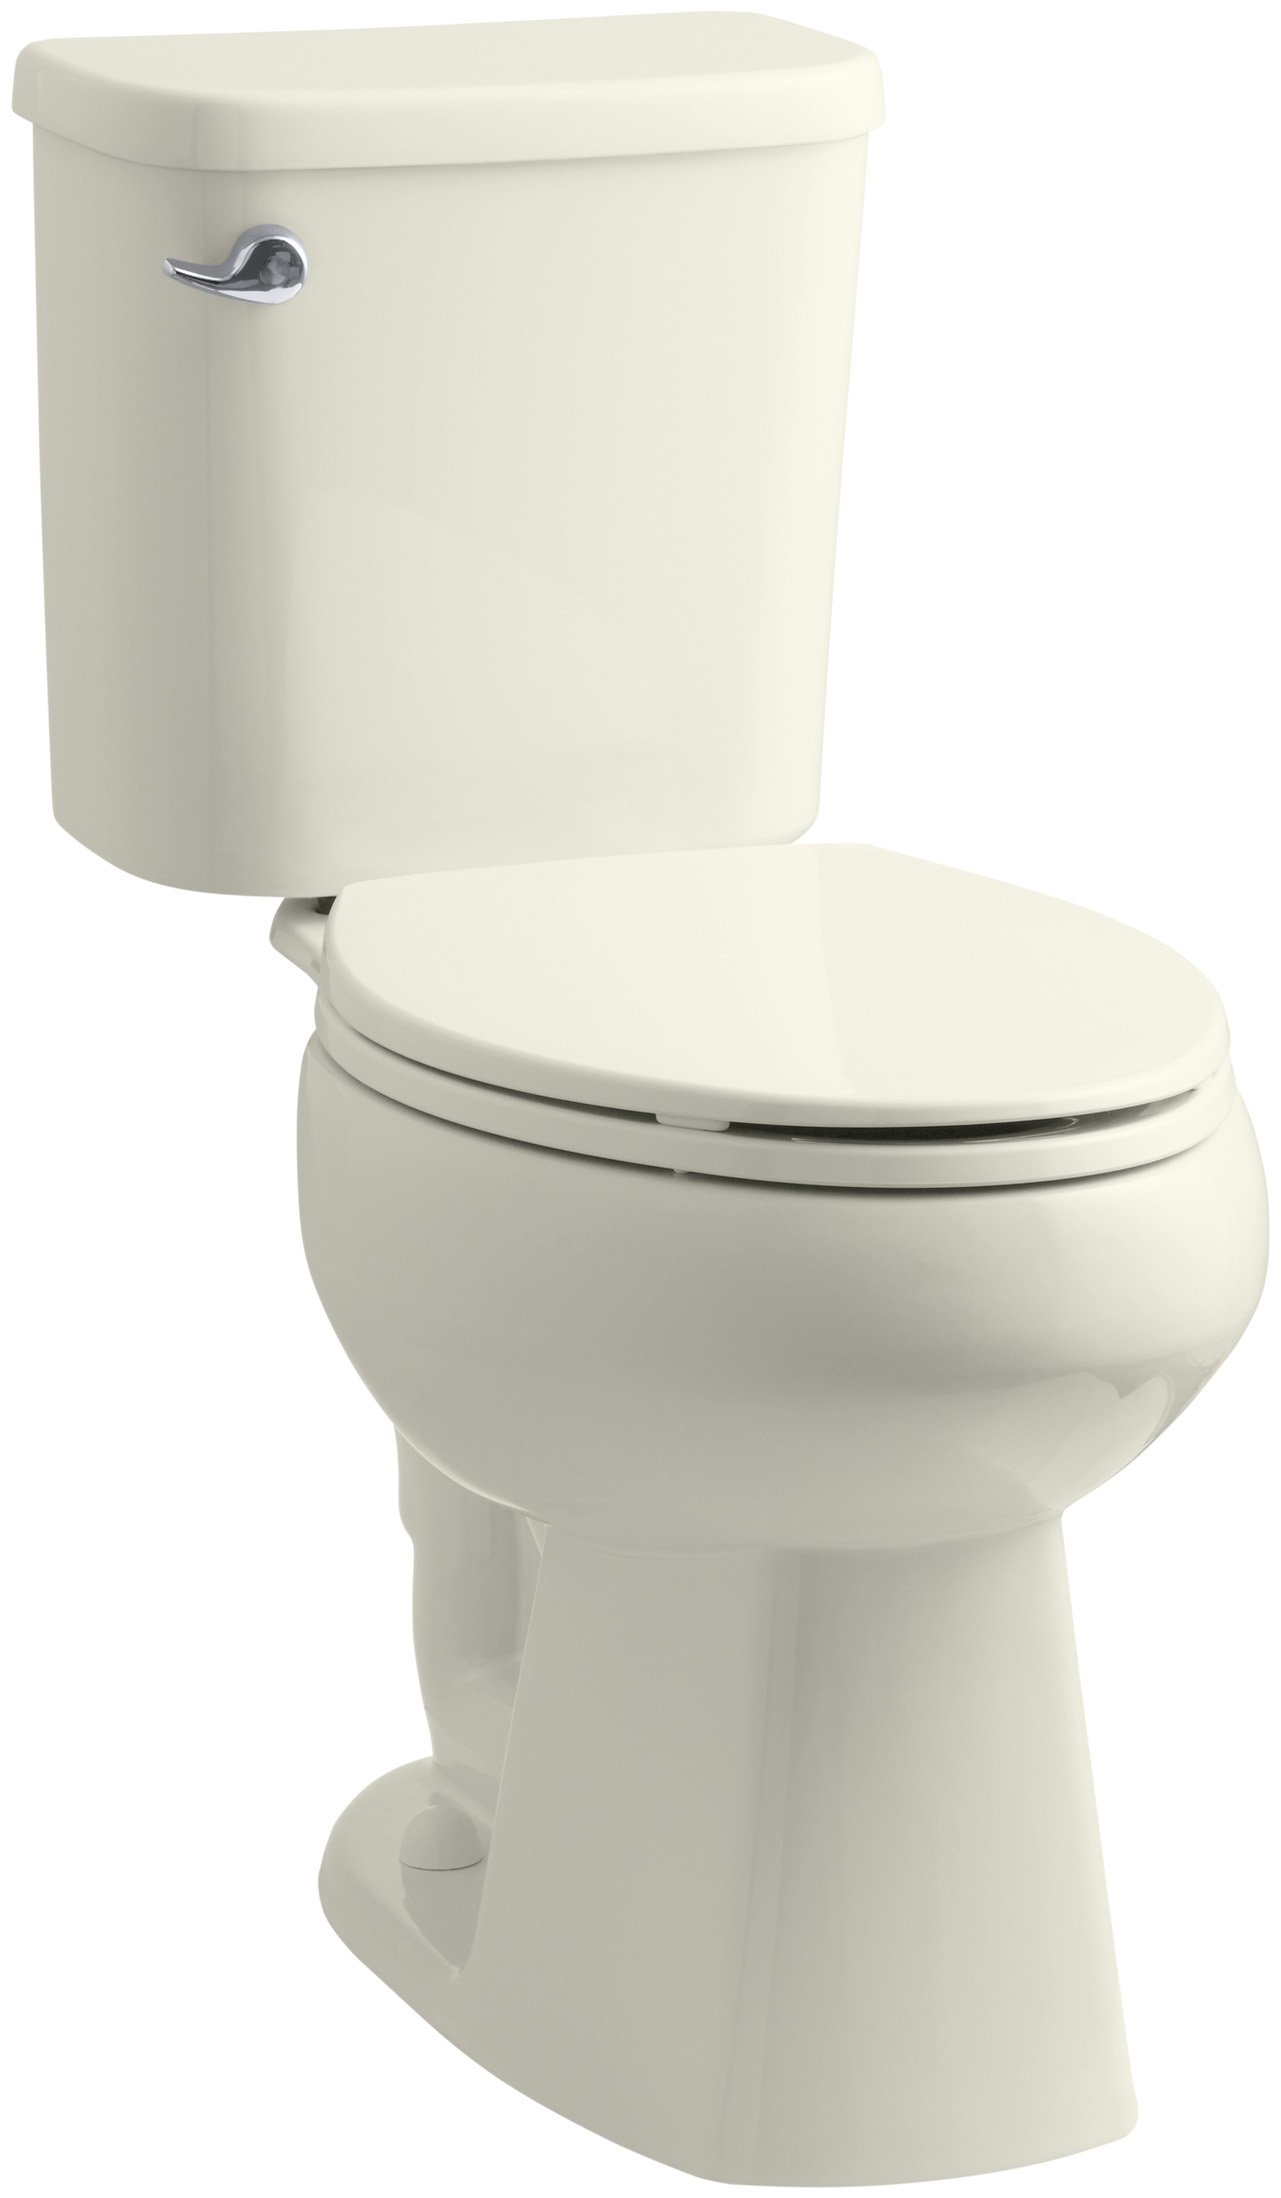 Sterling Windham ADA Luxury Height 1.28 GPF Toilet with Pro Force Technology, Biscuit